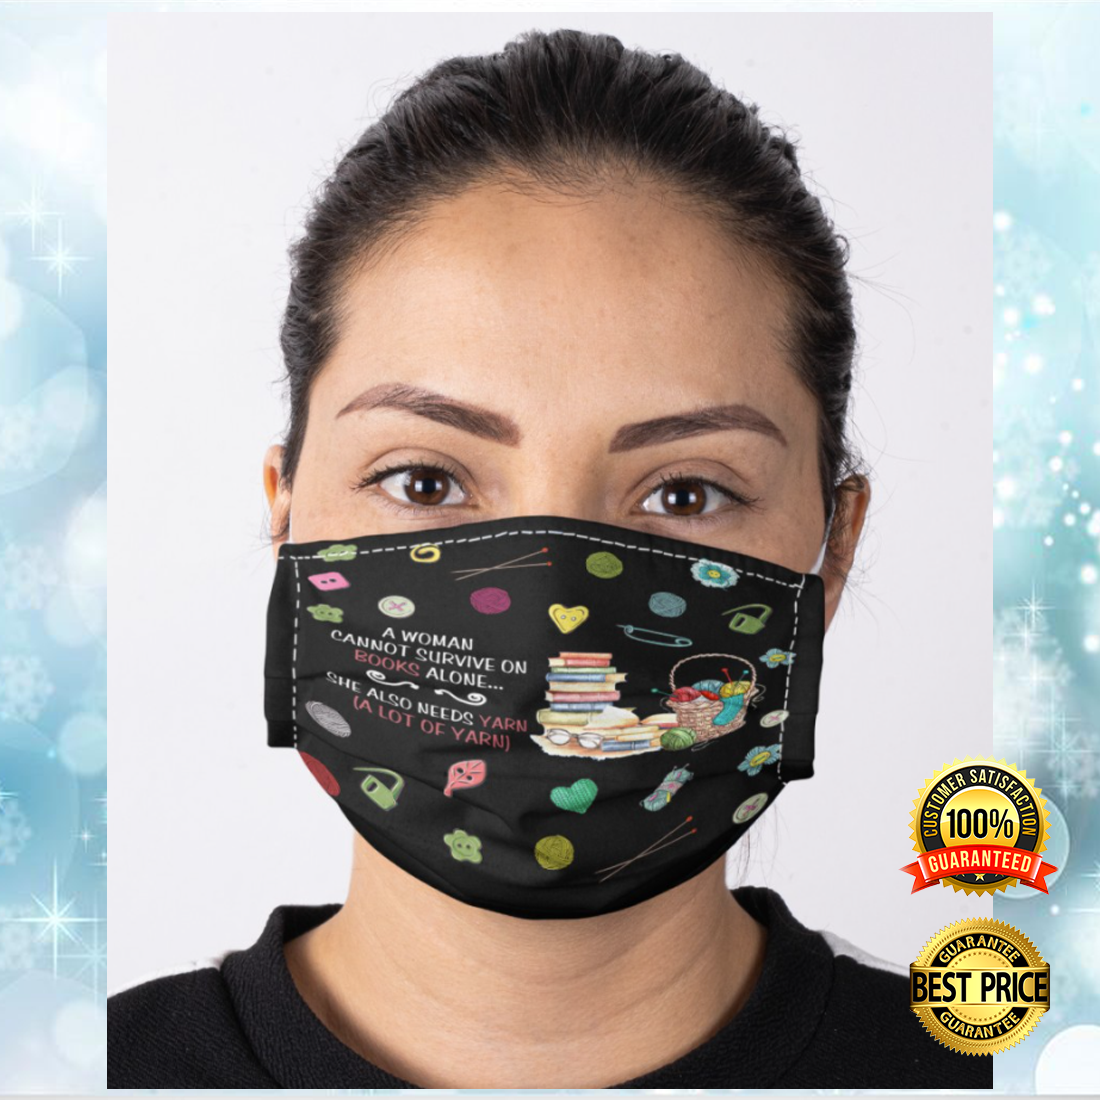 A WOMAN CANNOT SURVIVE ON BOOKS ALONE SHE ALSO NEEDS YARN CLOTH FACE MASK 4